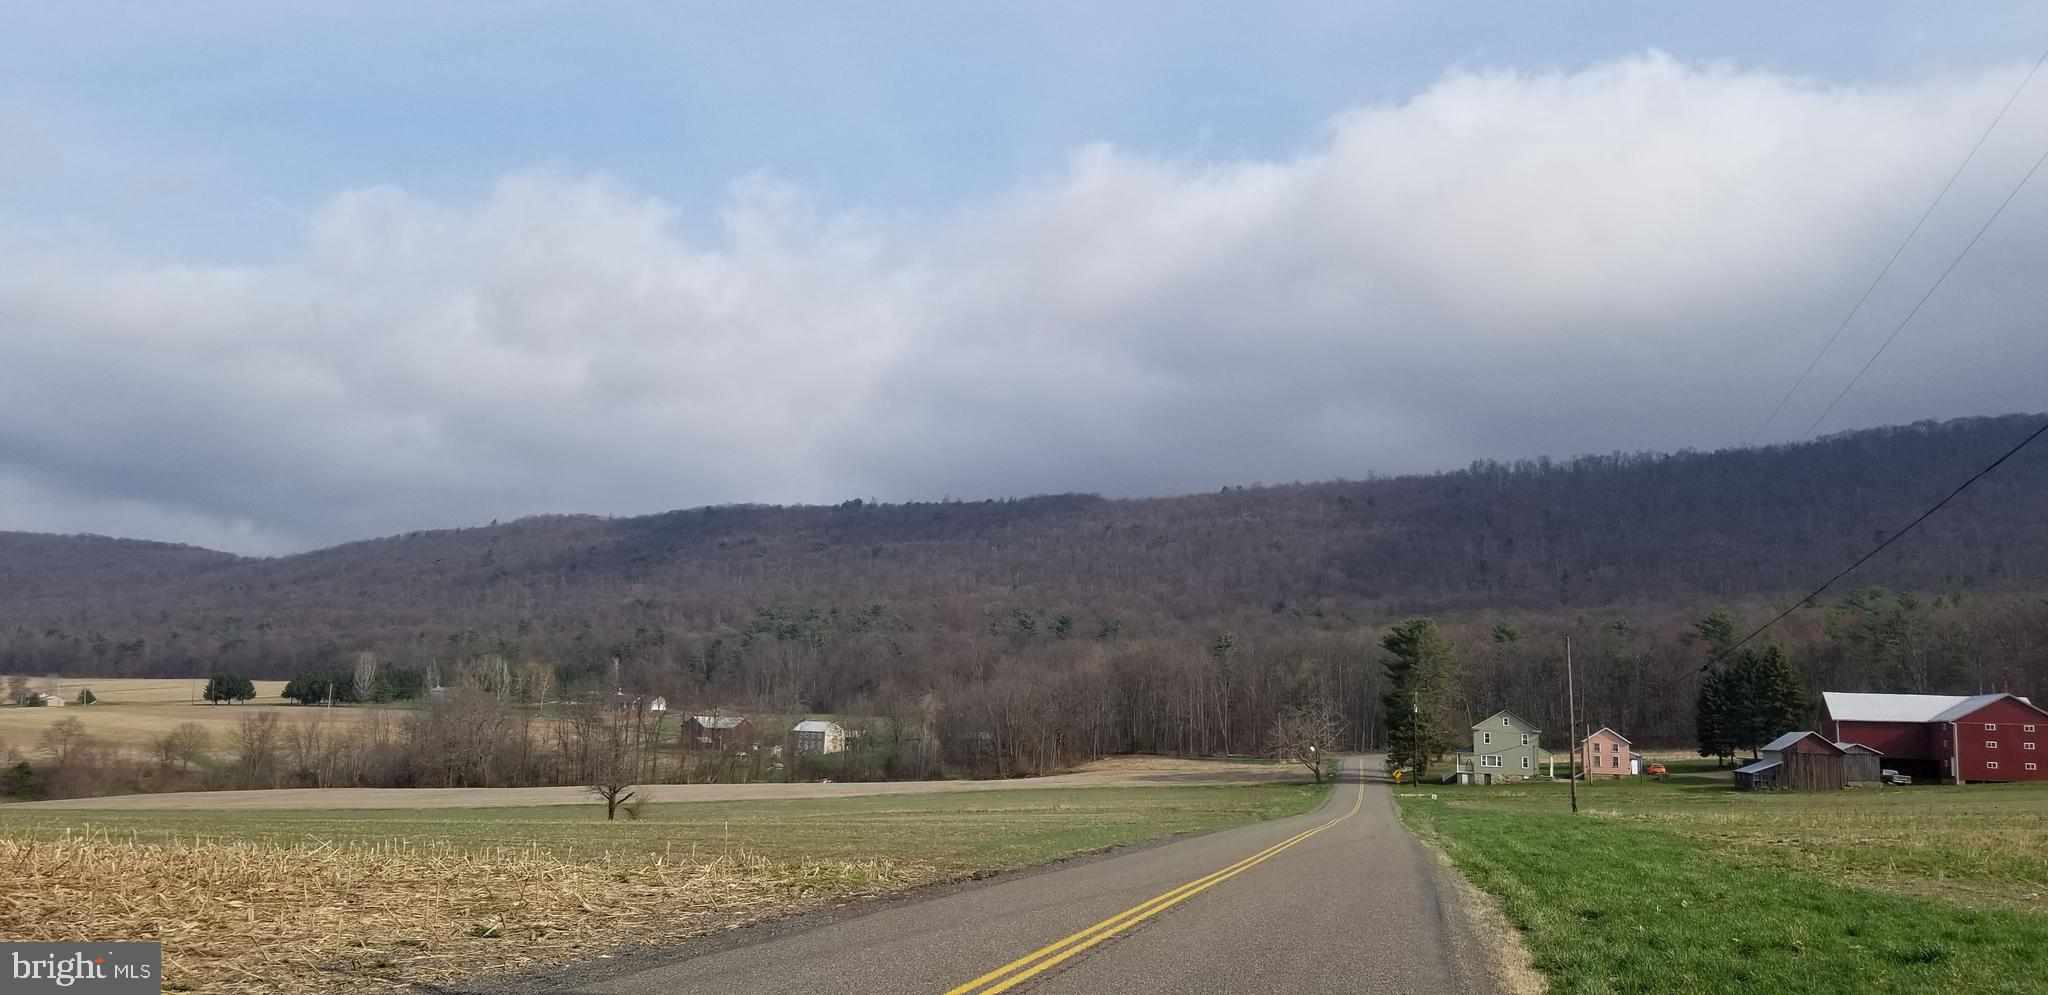 WINDMILL ROAD, DORNSIFE, PA 17823